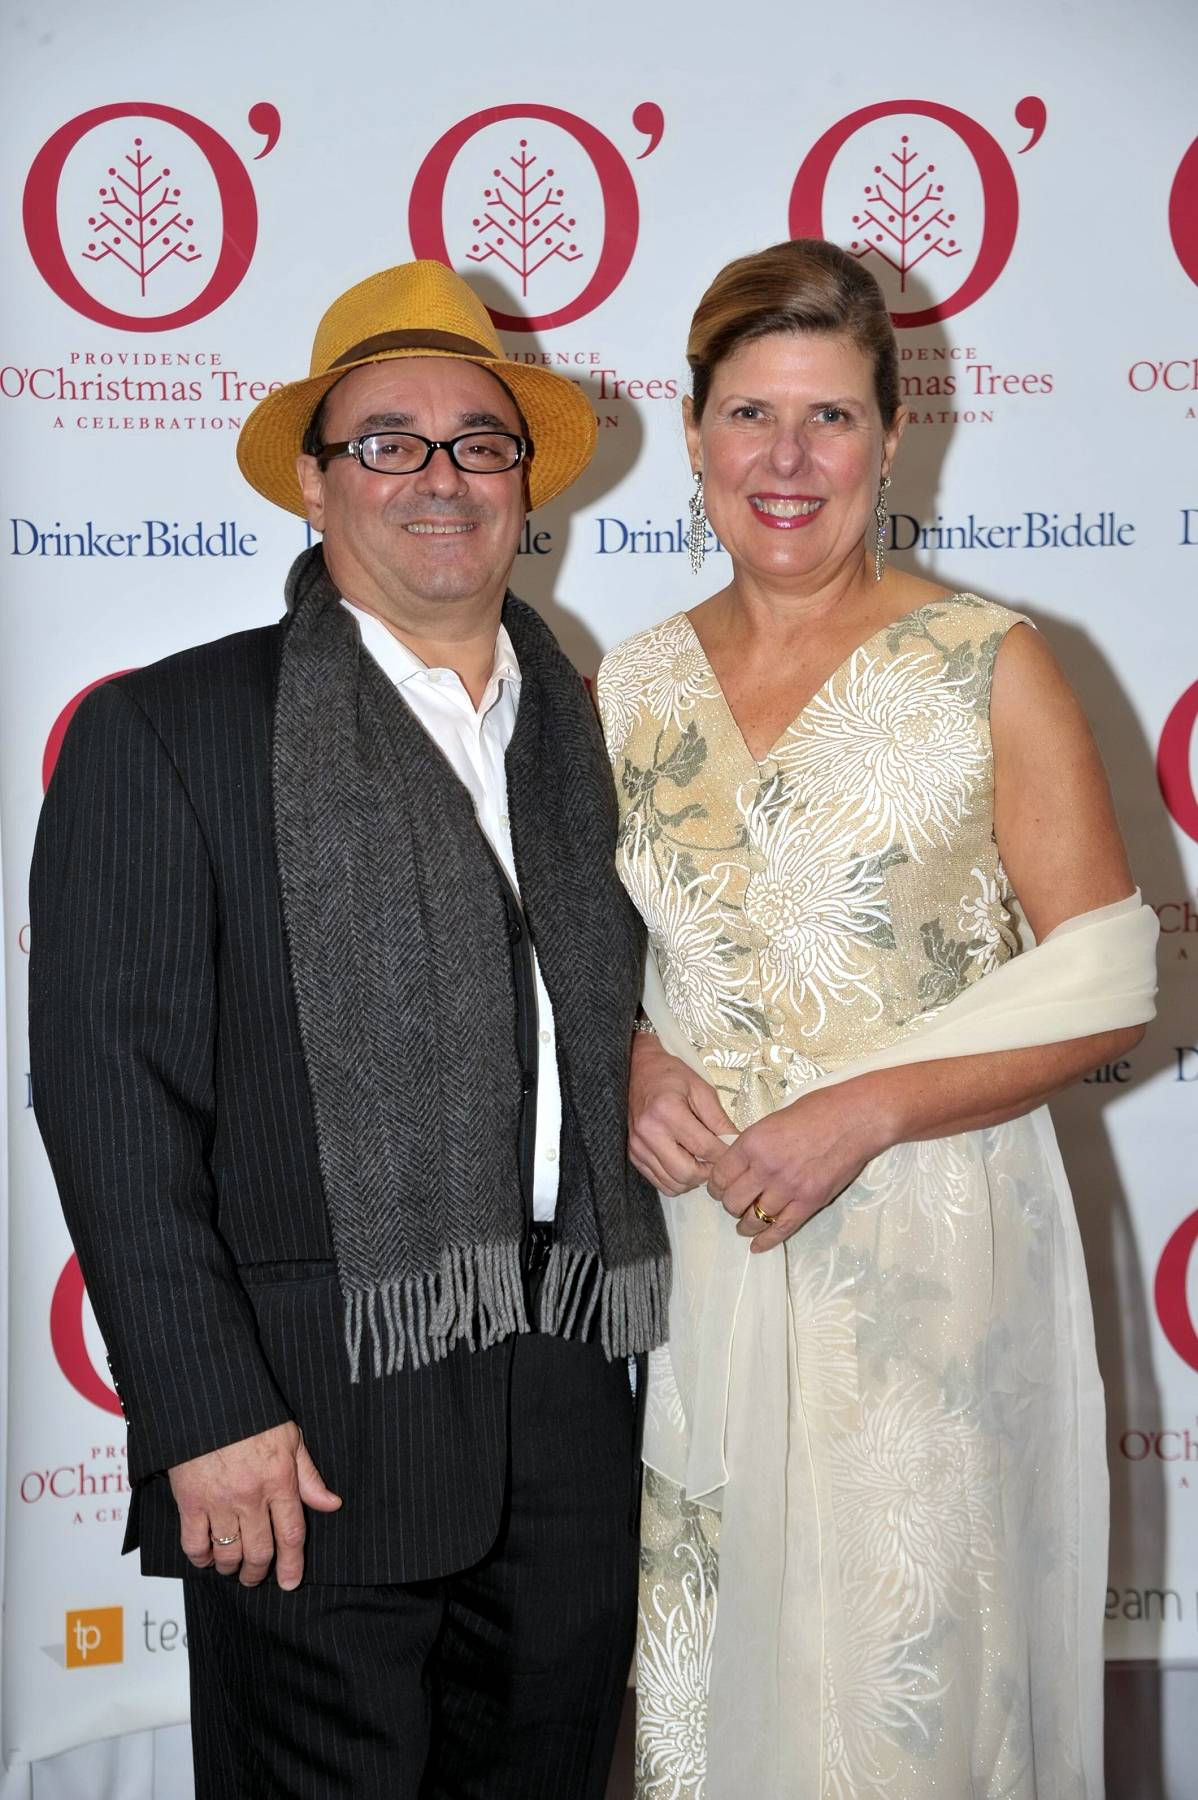 Chef Thierry Rautureau and wife Kathy